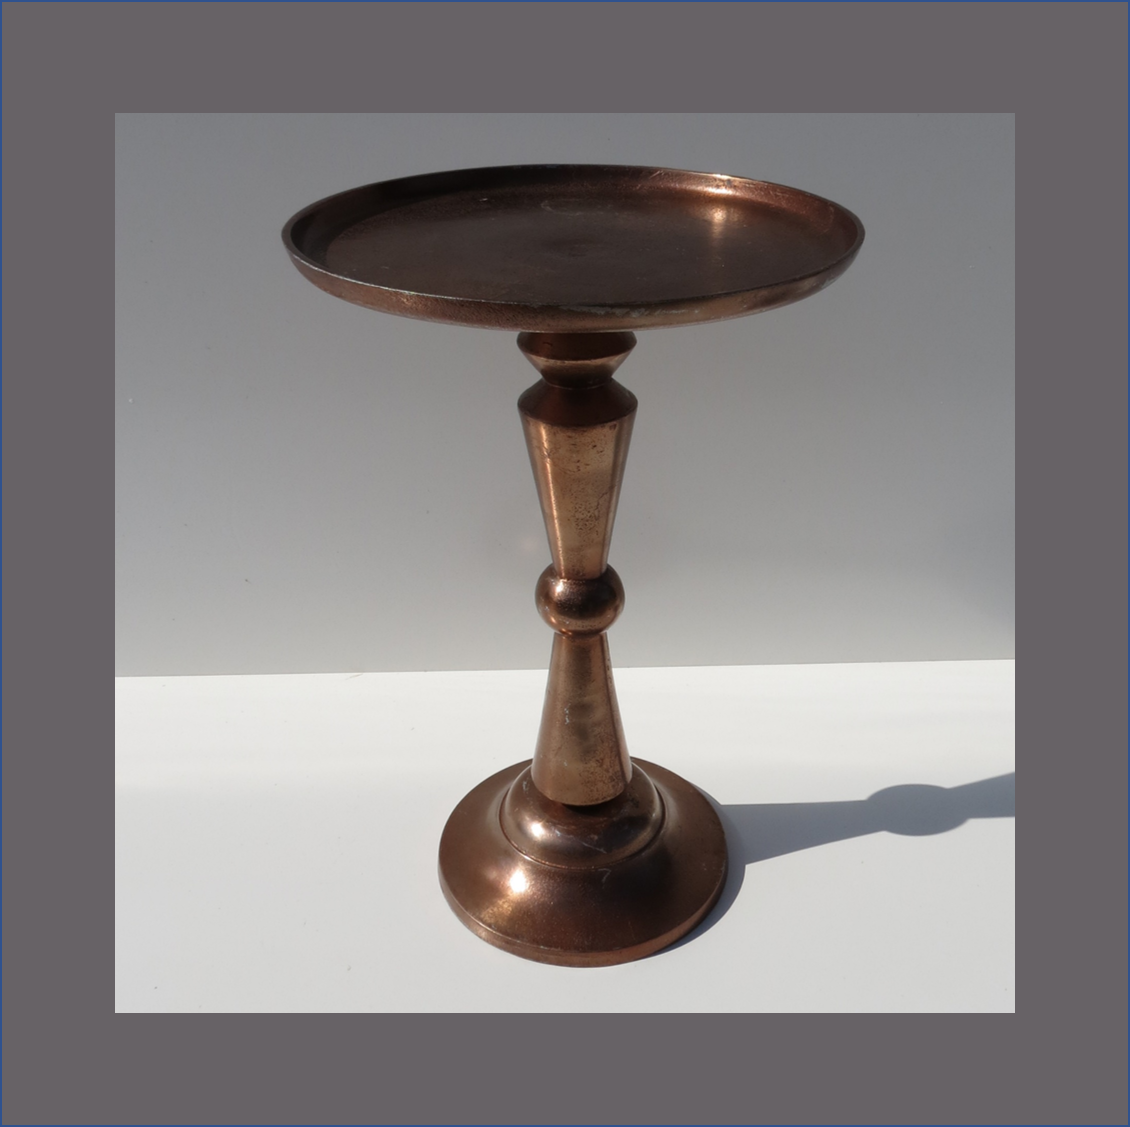 copper-damask-side-table-medium